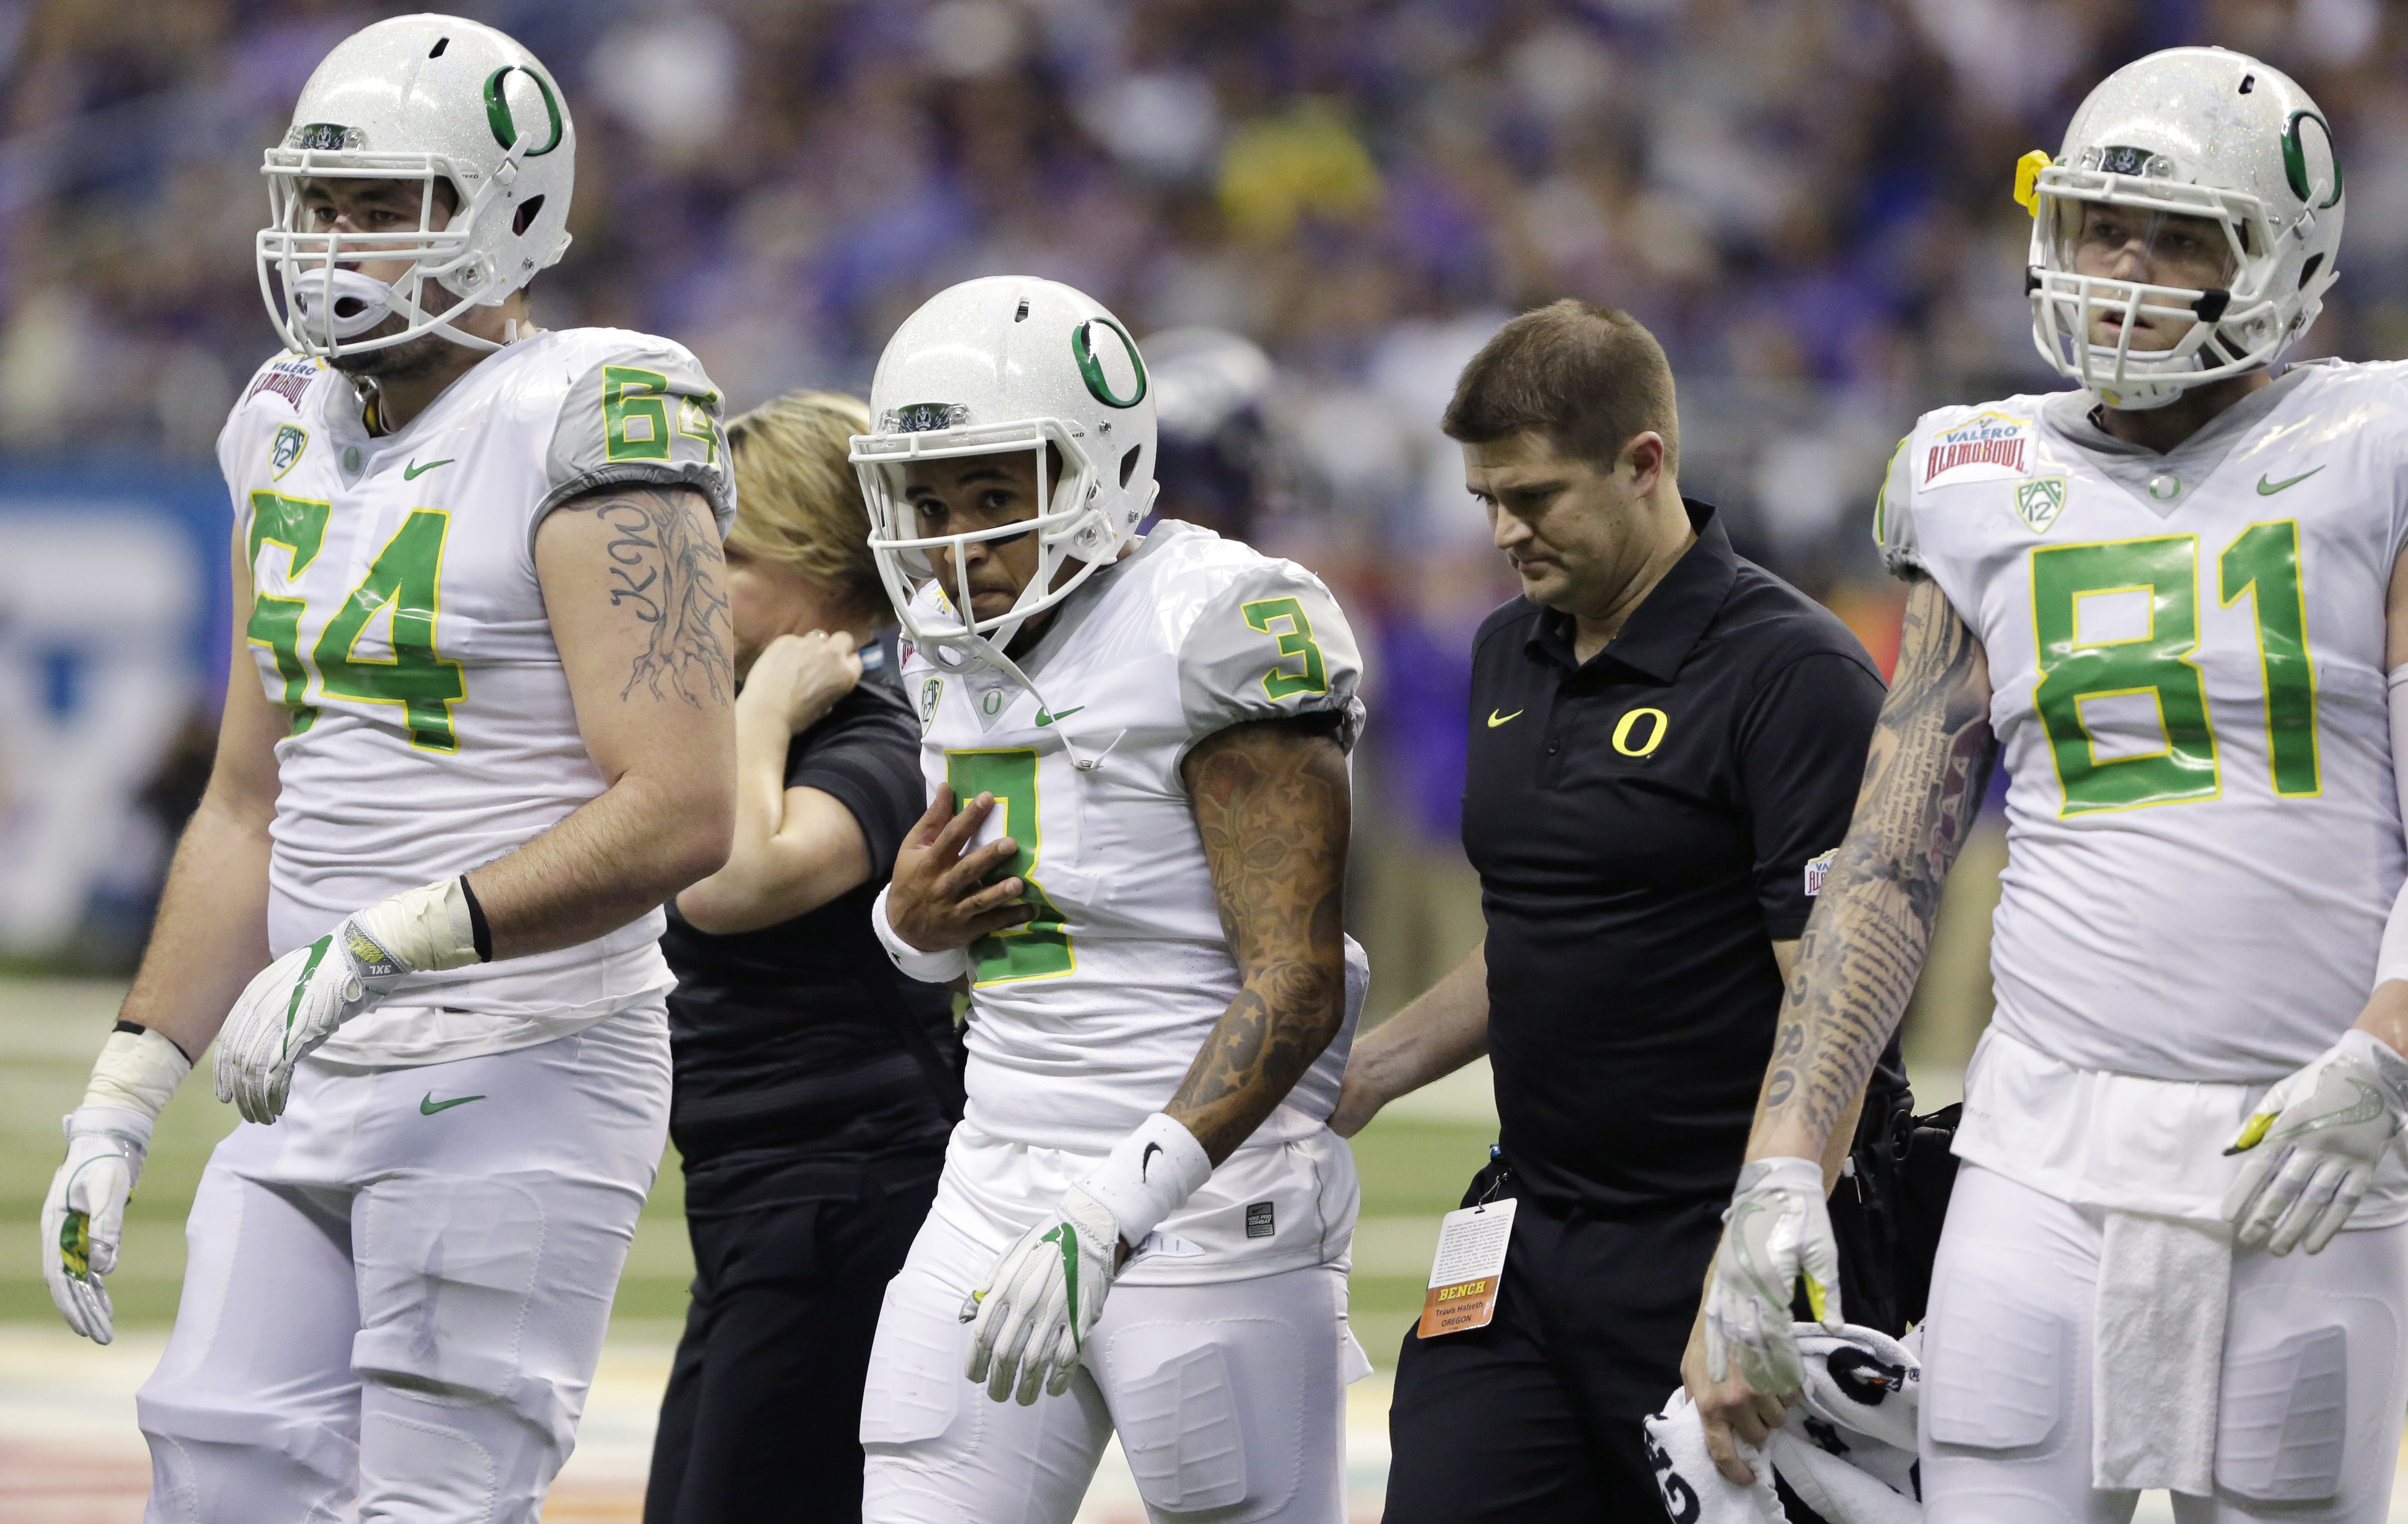 Oregon quarterback Vernon Adams Jr. (3) is walked off the field after he was injured during the first half of the Alamo Bowl NCAA college football game against TCU, Saturday, Jan. 2, 2016, in San Antonio. (AP Photo/Austin Gay)